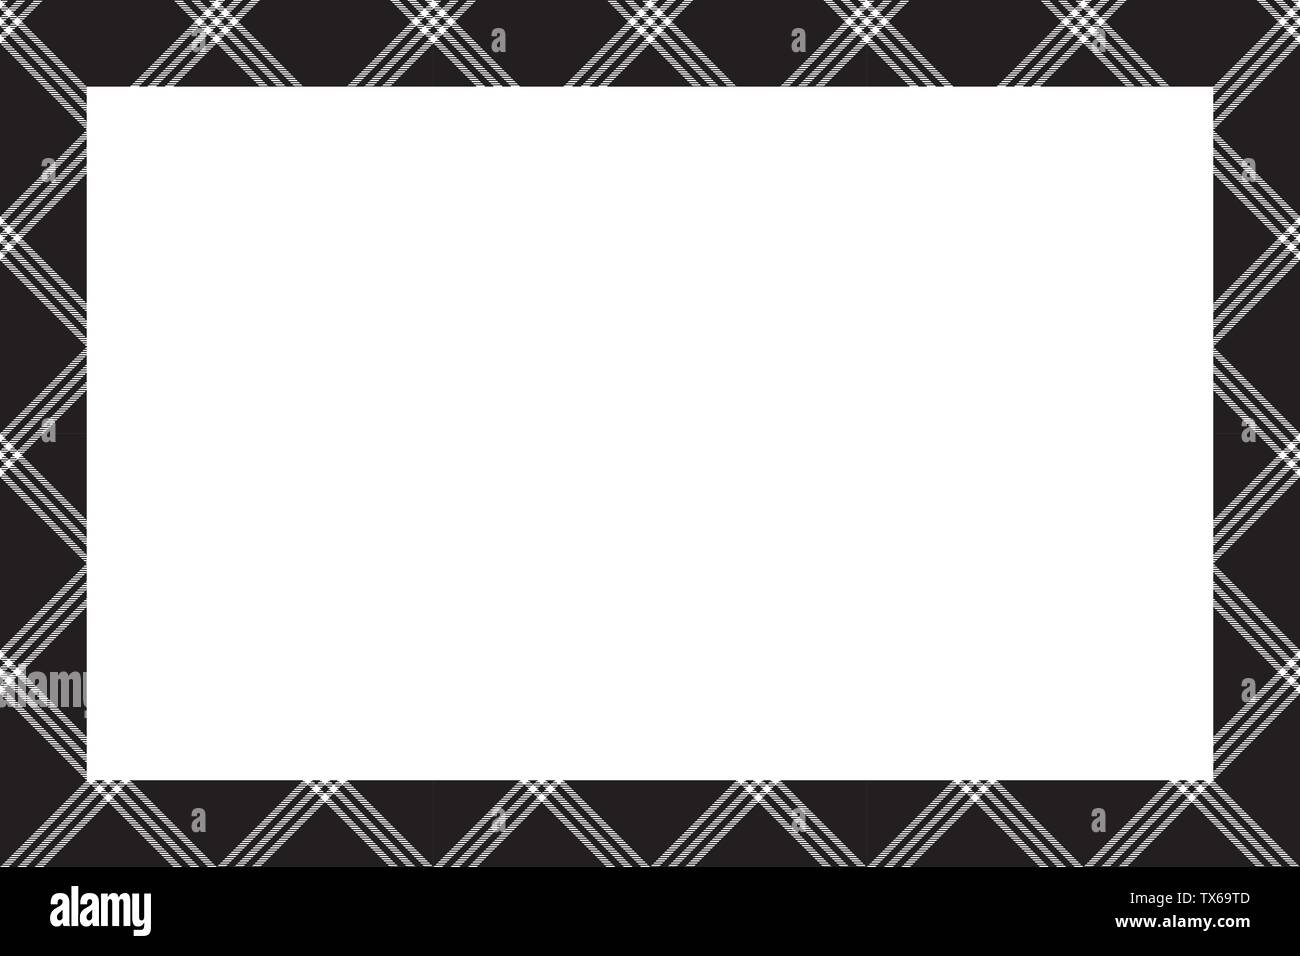 Rectangle borders and Frames vector. Border pattern geometric vintage frame design. Scottish tartan plaid fabric texture. Template for gift card, coll - Stock Vector